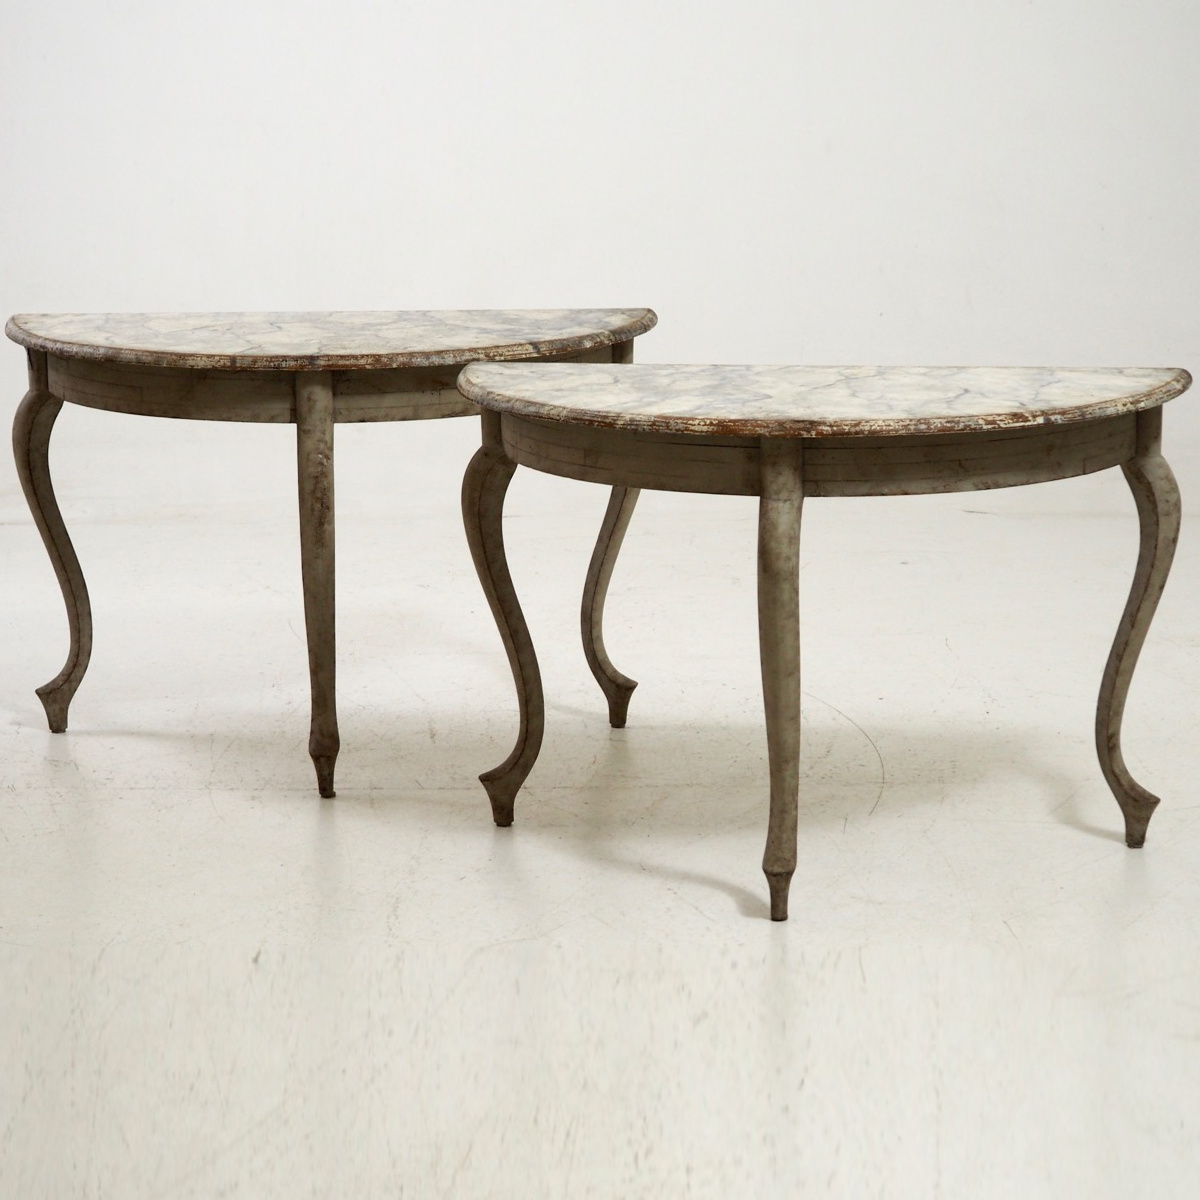 Swedish demi-lune tables, 19th C. - € 1.900